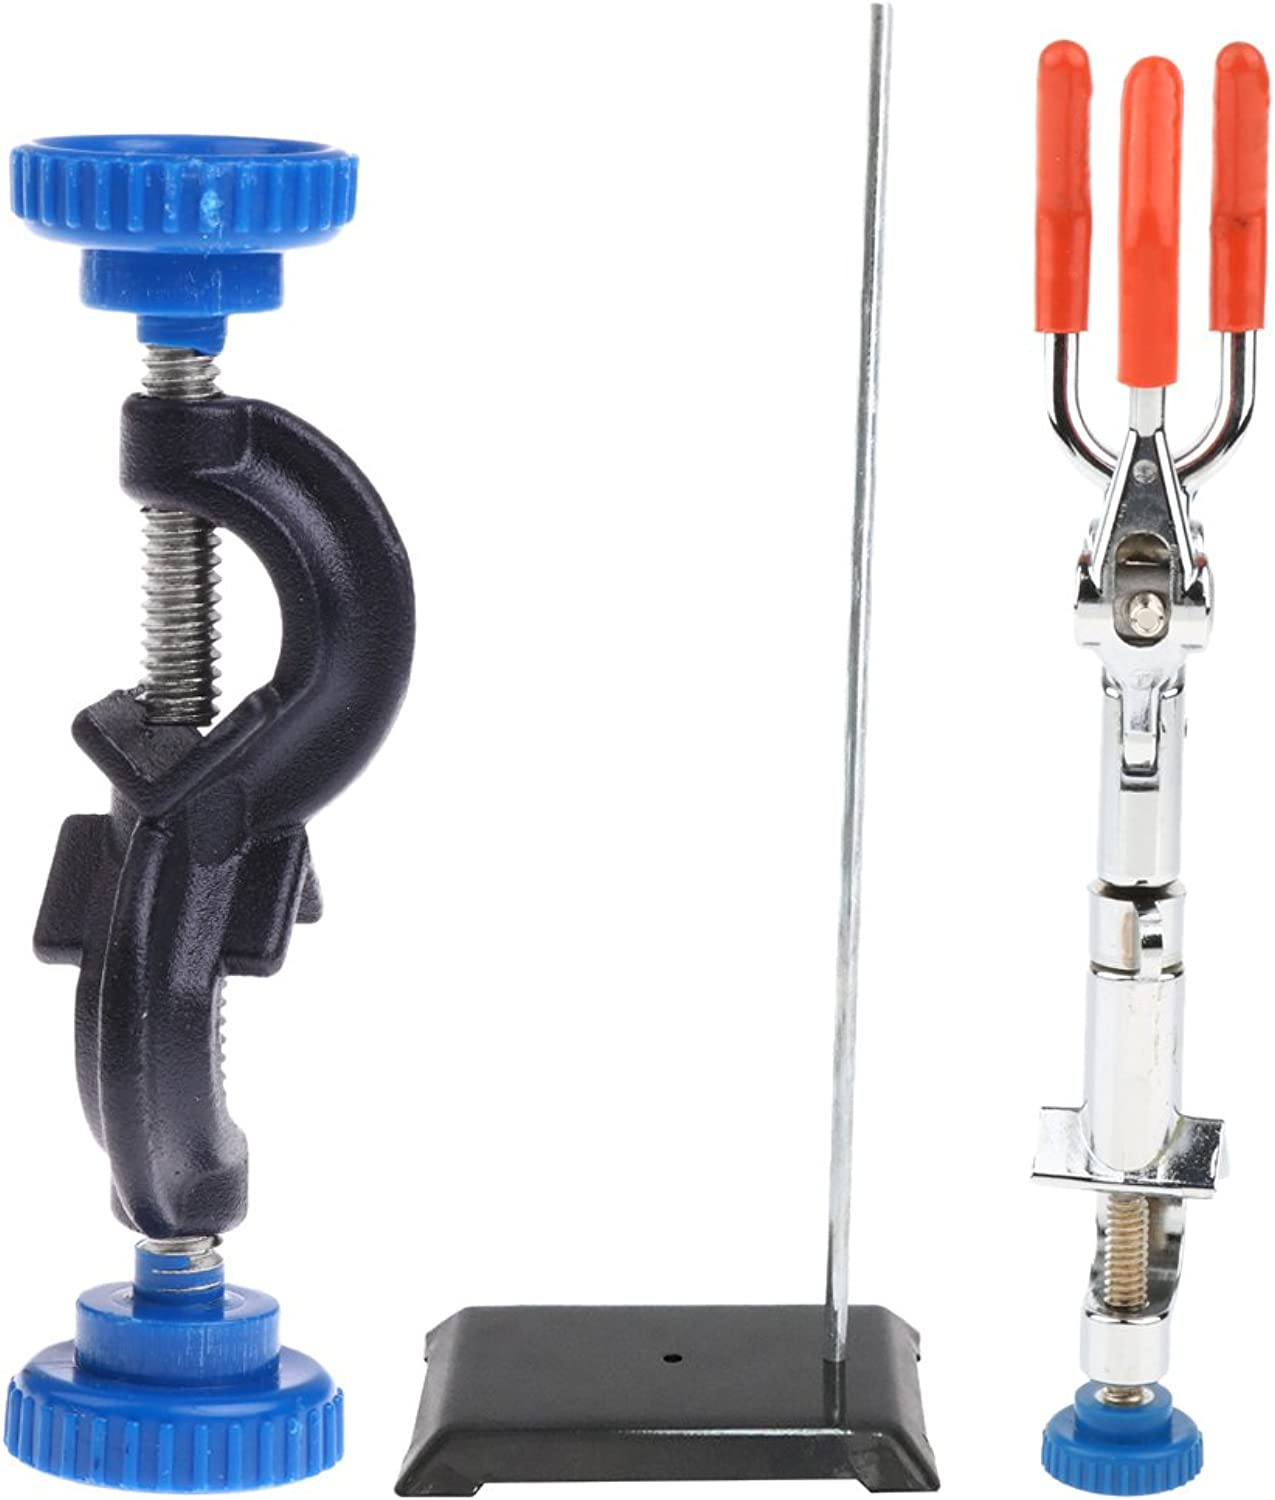 Baoblaze 19'' Meta Lab Bracket Support Stand + Flask Clip Clamp with Boss Head + Grip  as Shown, Clamp B 13mm